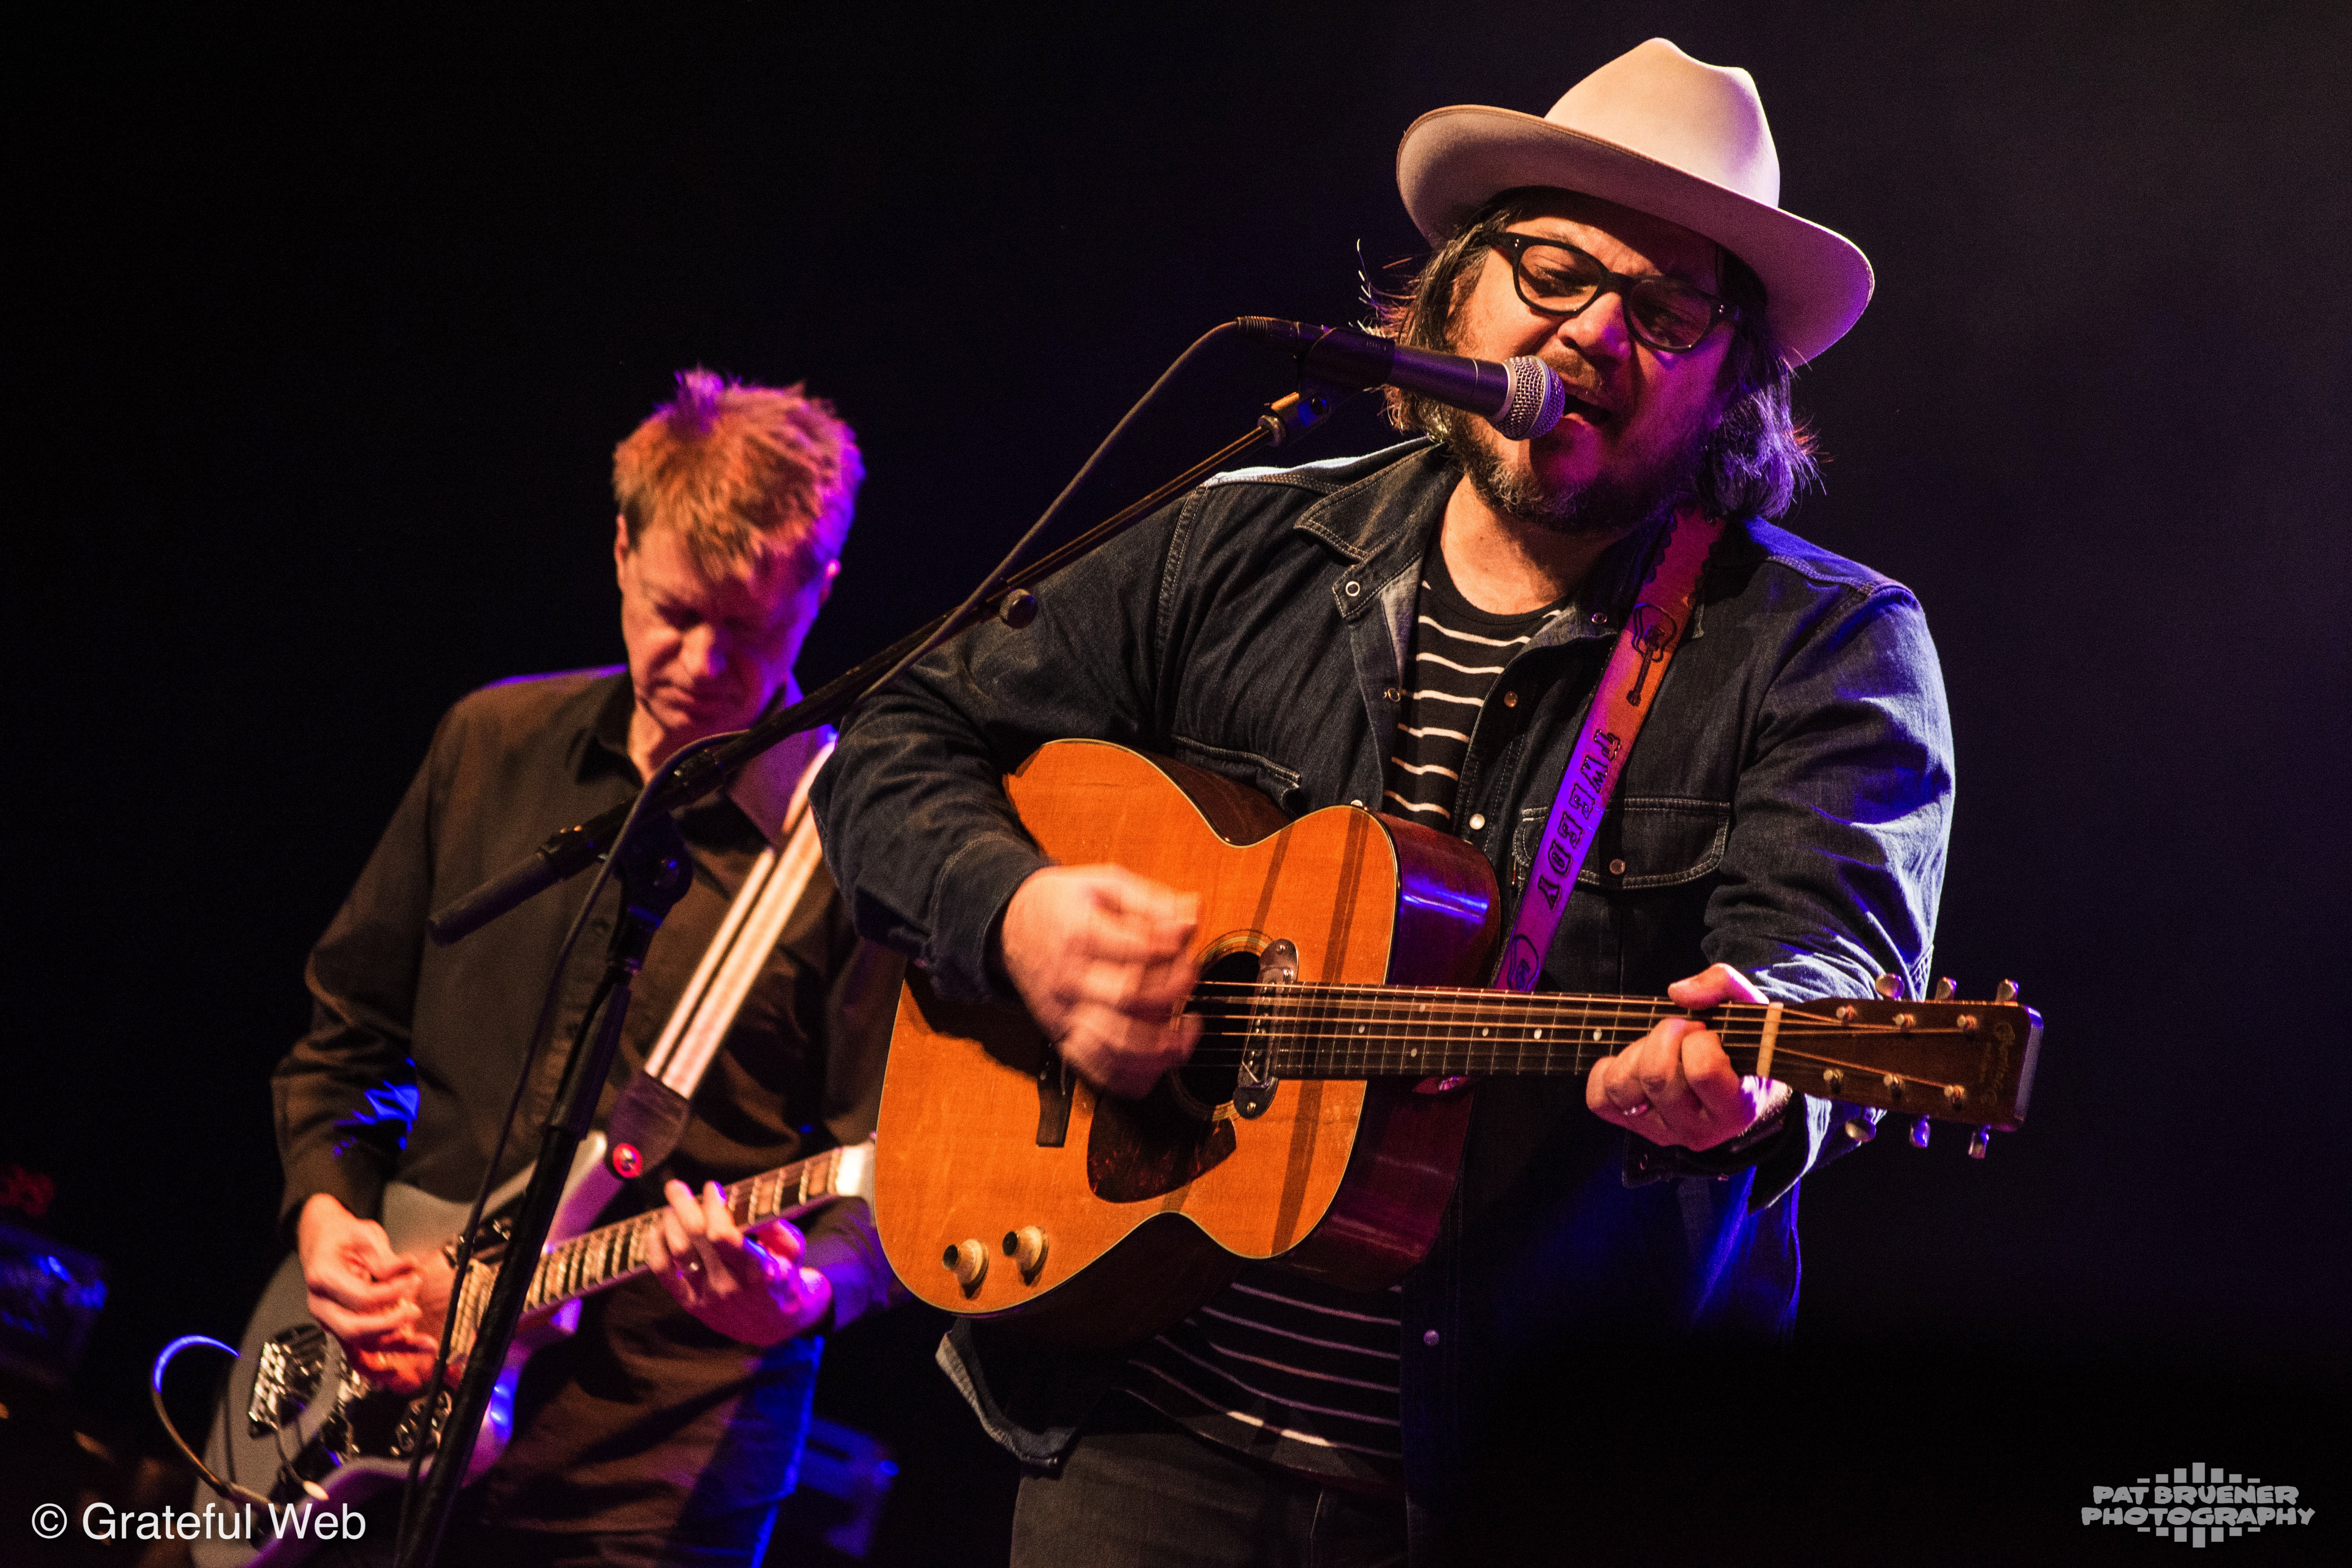 Solid Sound Festival Announces Live Band Karaoke With Wilco